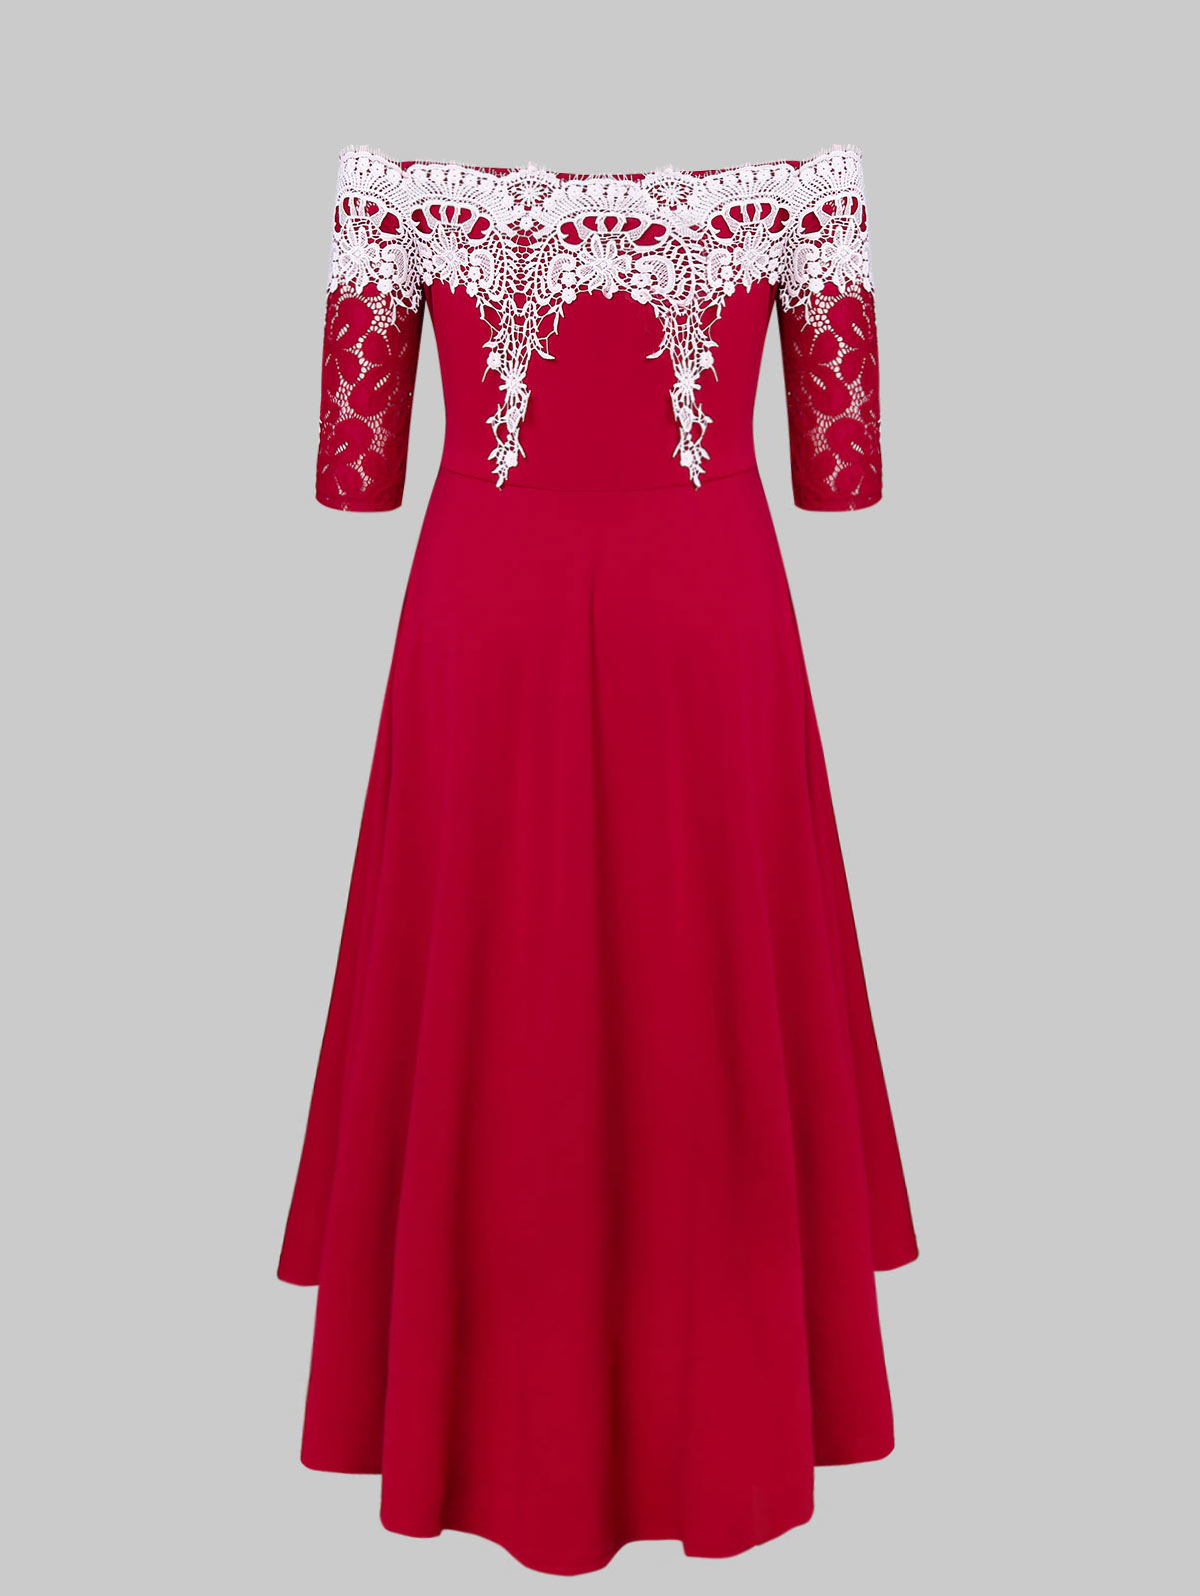 f3ddc7b9285 Details about Half Sleeve Off The Shoulder Plus Size High Low Lace Panel  Women Party Dress